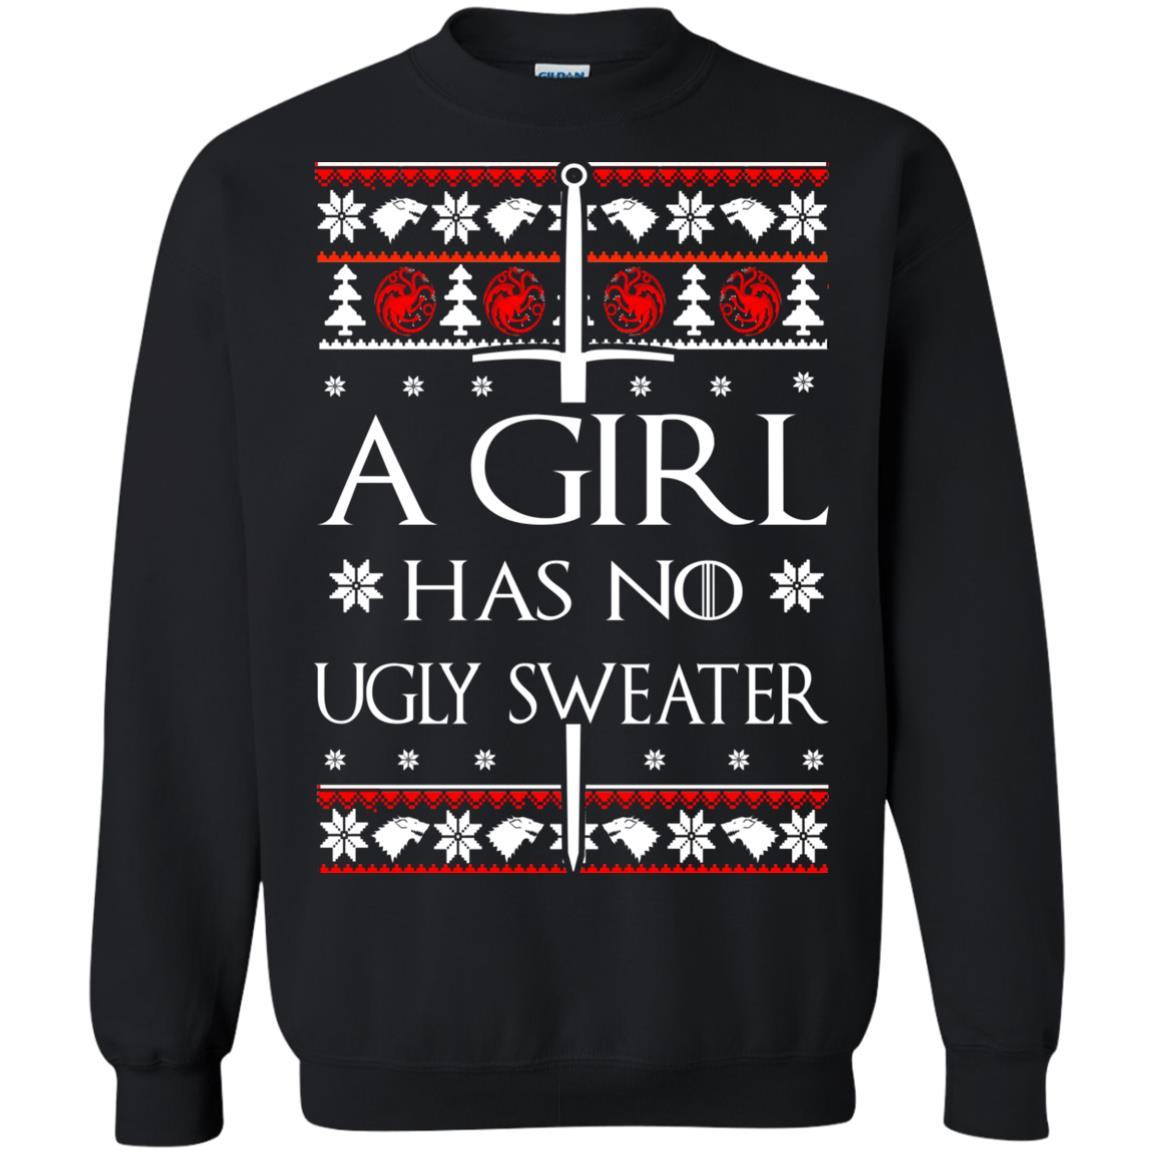 image 1505 - A Girl Has no Ugly Sweater, Shirt, Christmas Sweatshirt Game Of Thrones